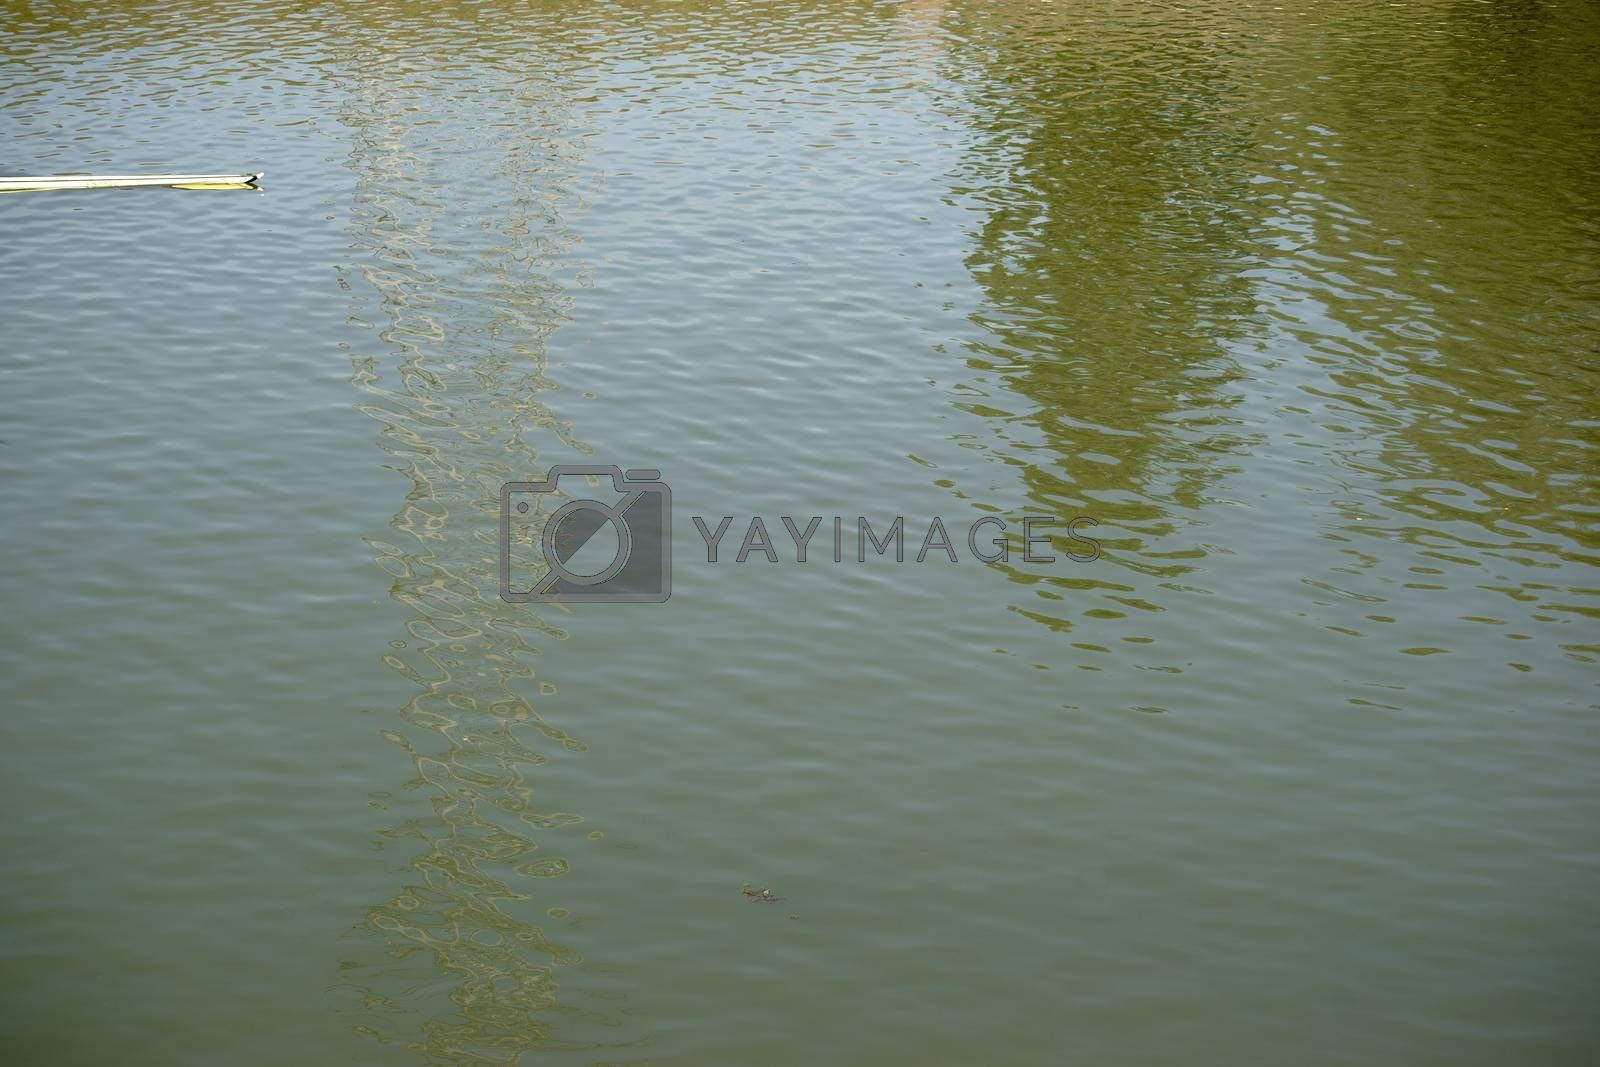 A sports rowing boat cuts through a shiny wavy water surface with reflections.